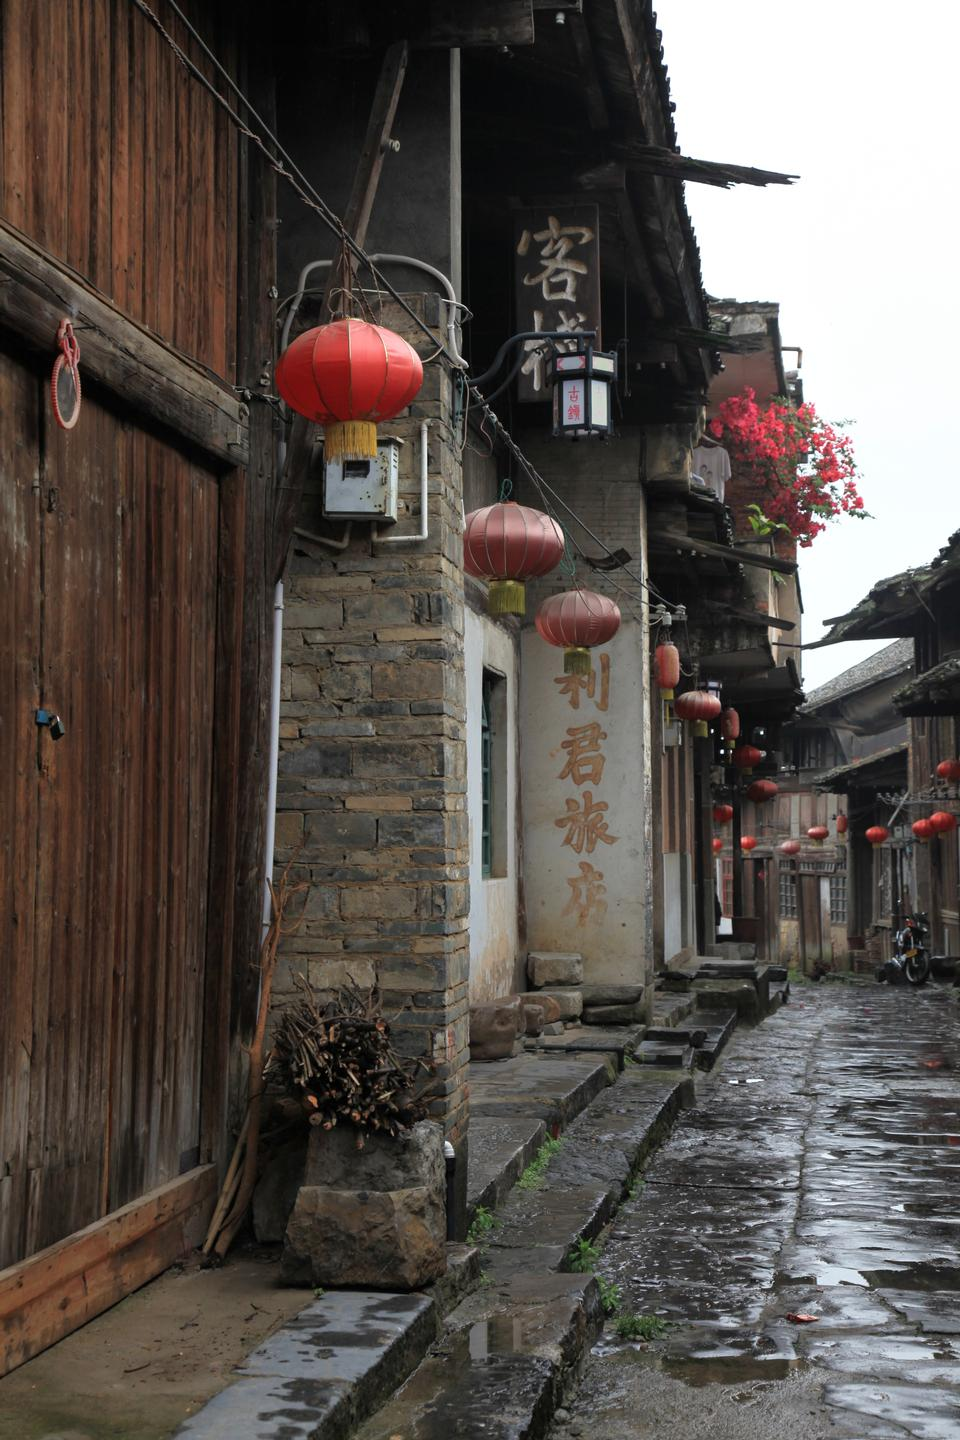 Free Photos: The ancient town of Daxuzhen, Guilin, Guangxi | shanghaiboy